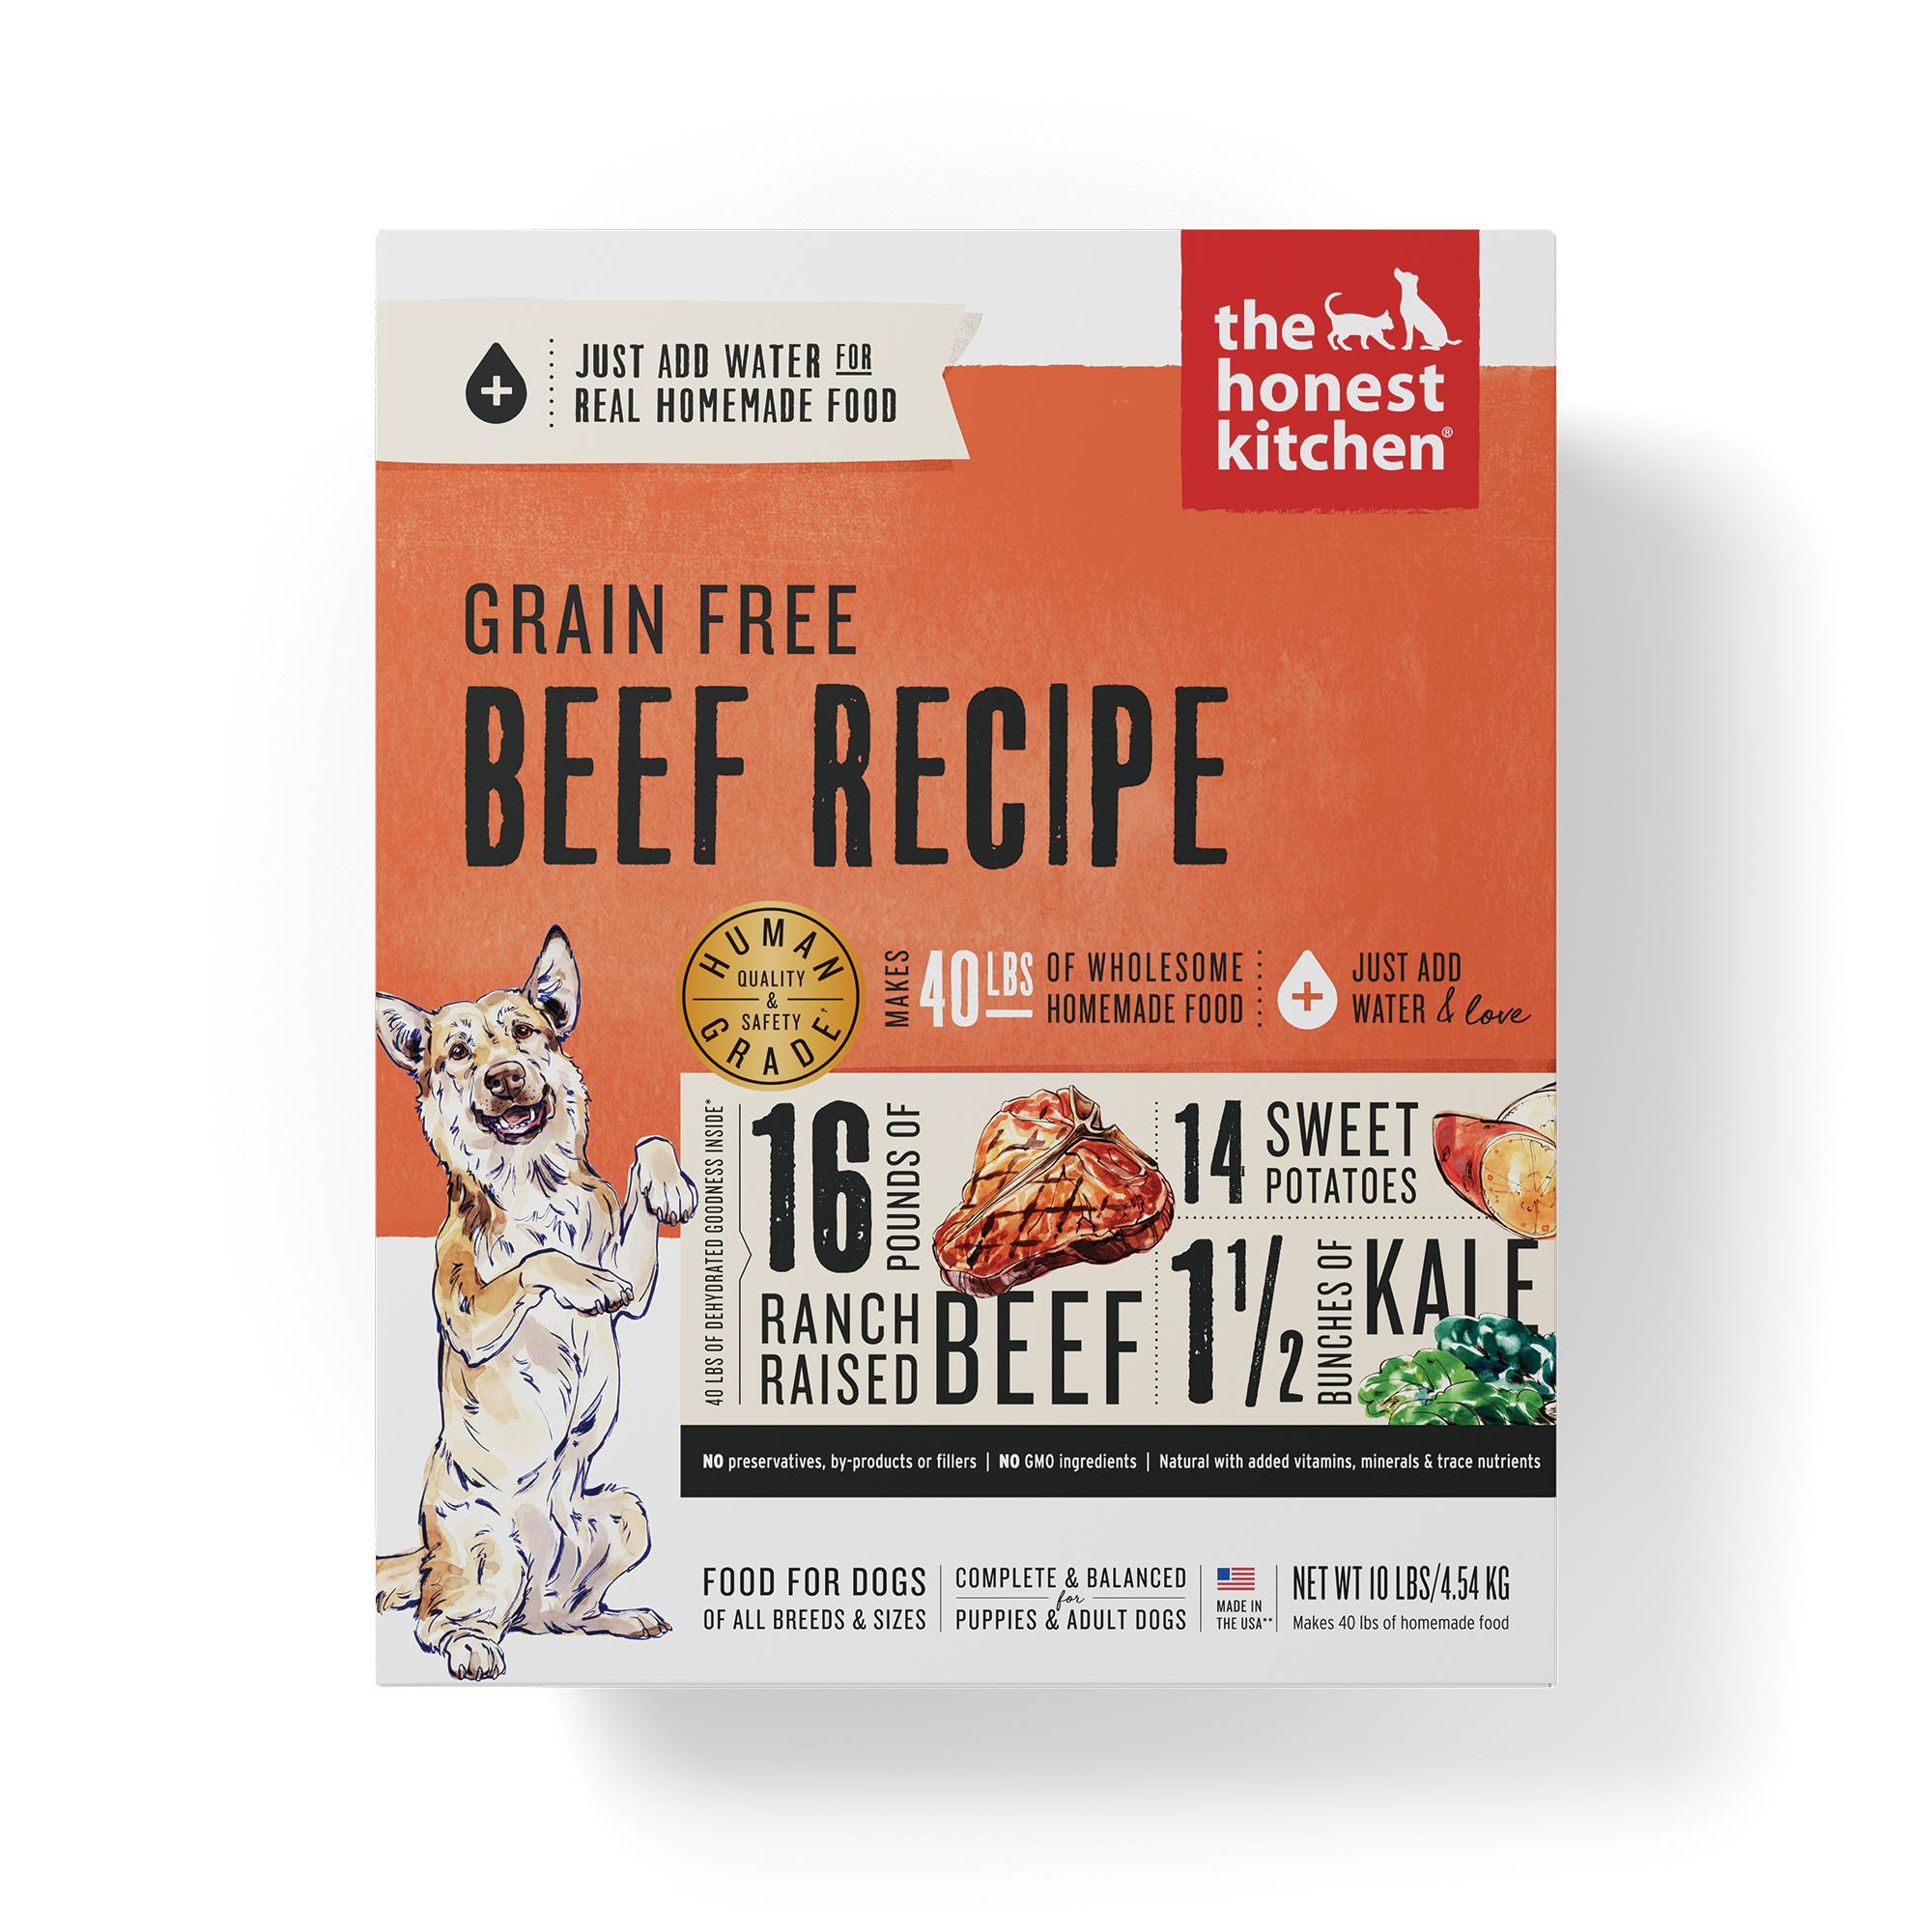 The Honest Kitchen Beef Recipe Grain-Free Dehydrated Dog Food, 10-lb box